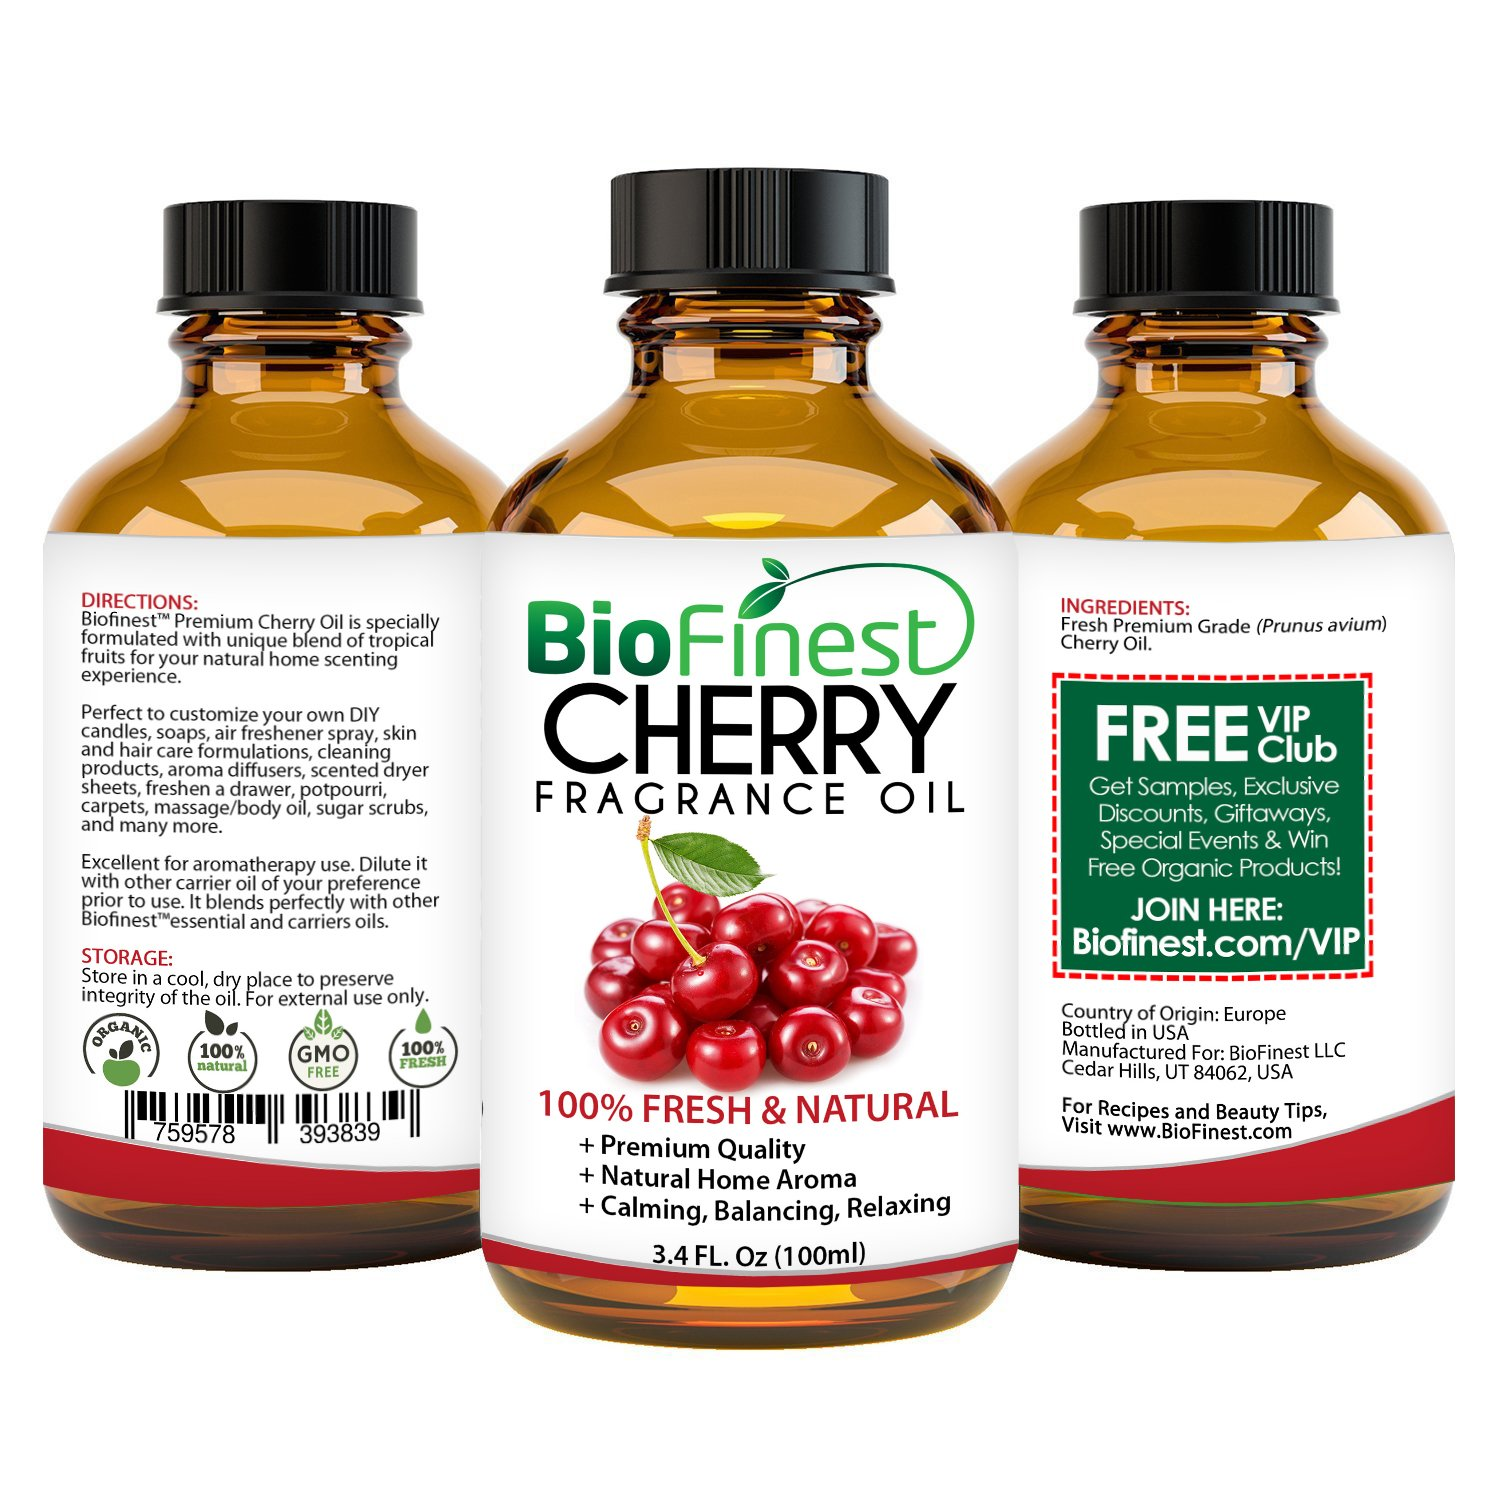 BioFinest Cherry Fragrance Oil - 100% Pure Natural Fruit - Home  Aromatherapy, Essential Oil Diffuser, Air